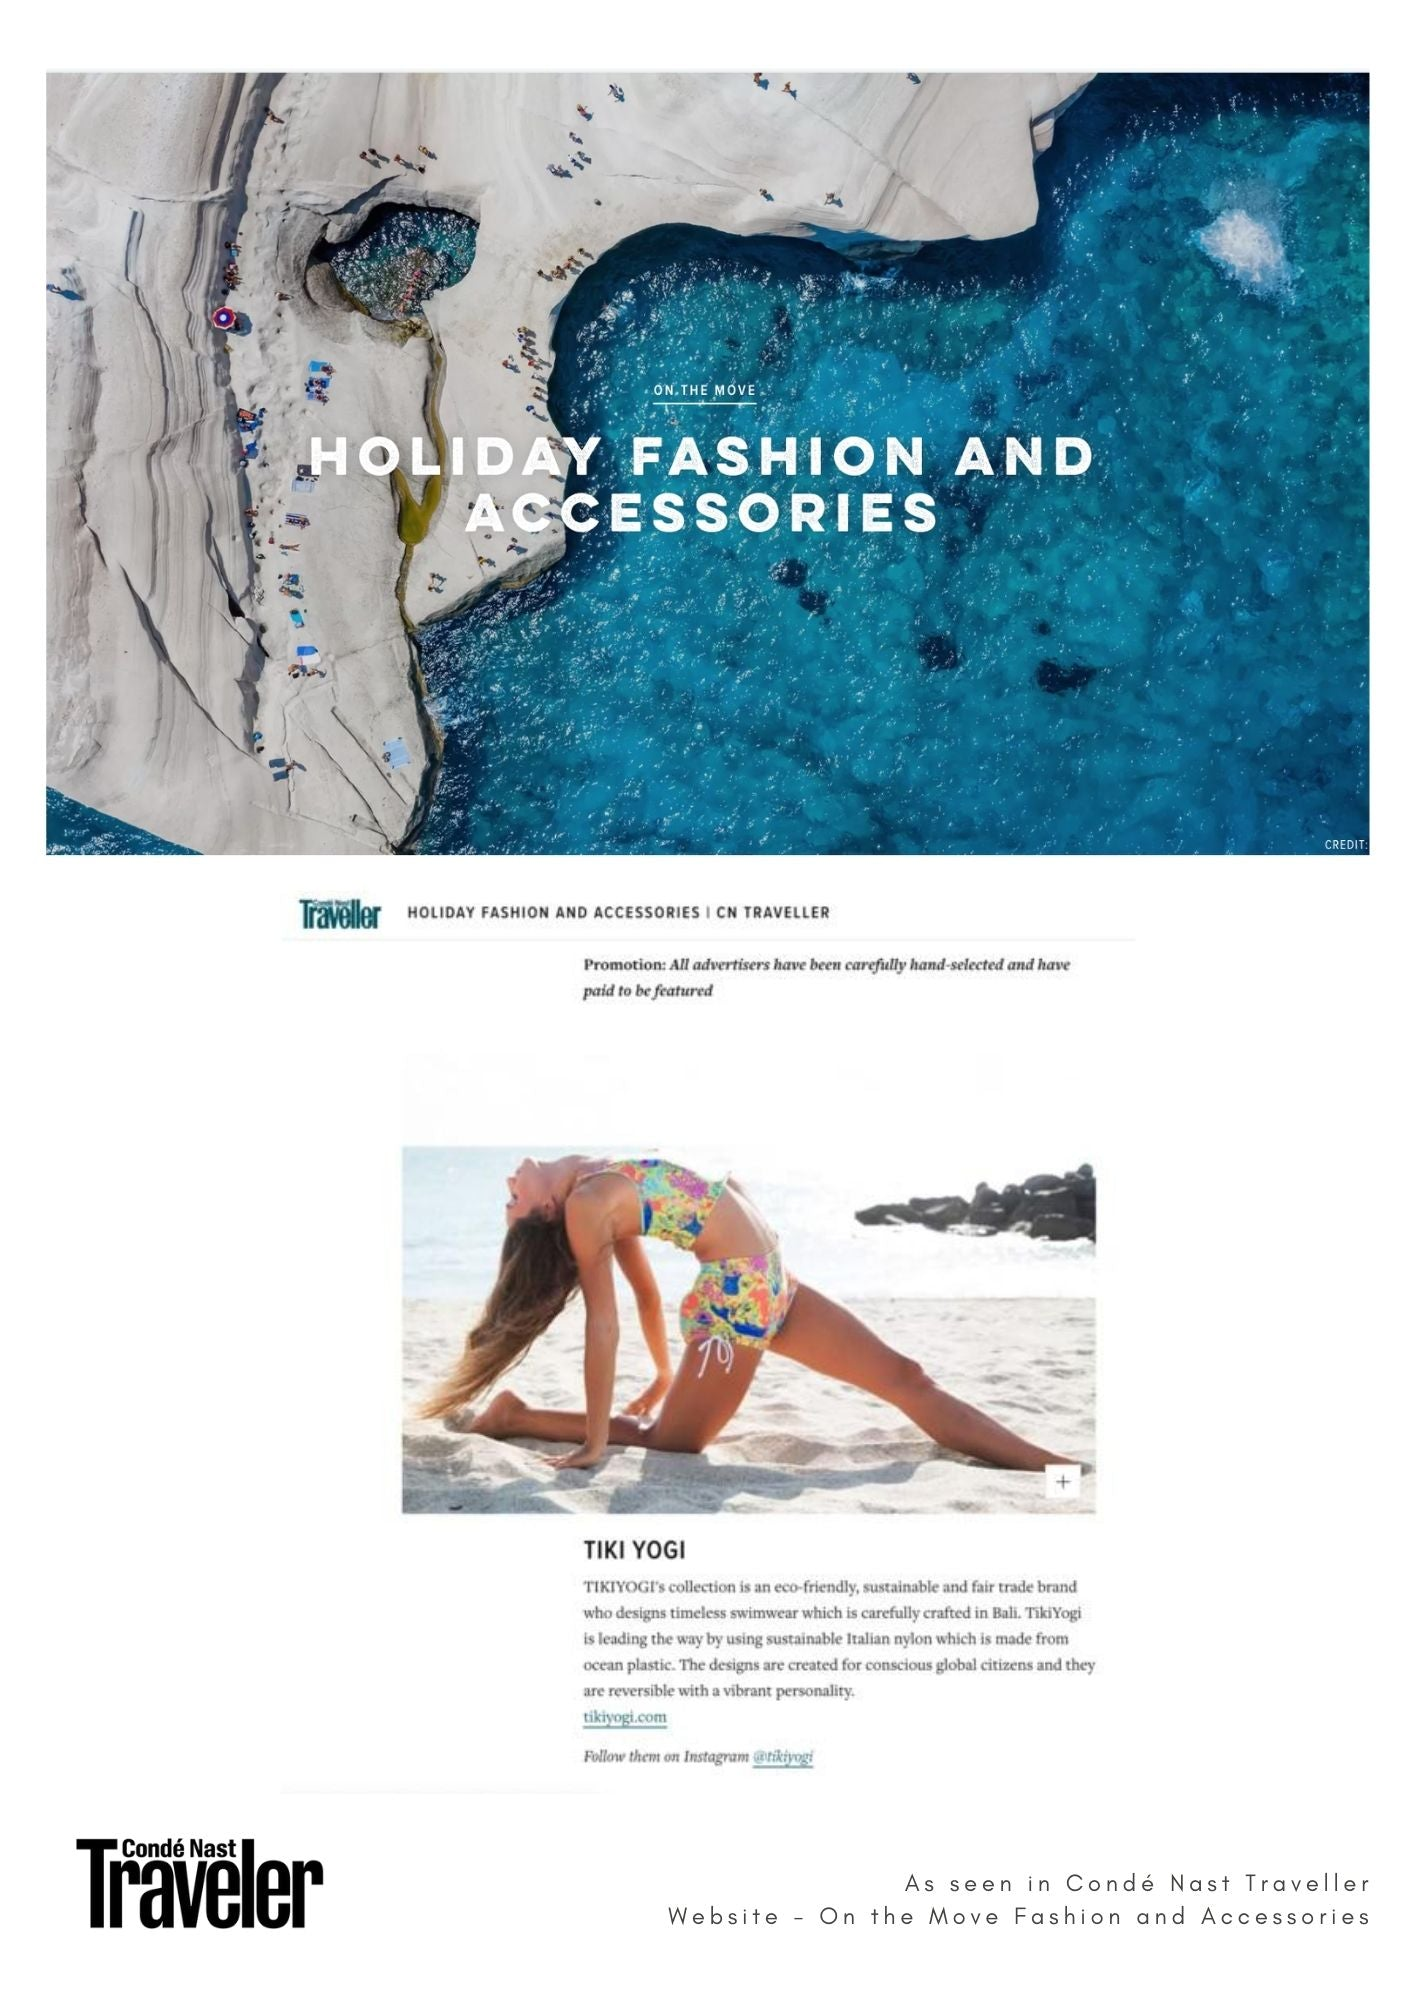 TIKIYOGI® As seen in Condé Nast Traveller Website